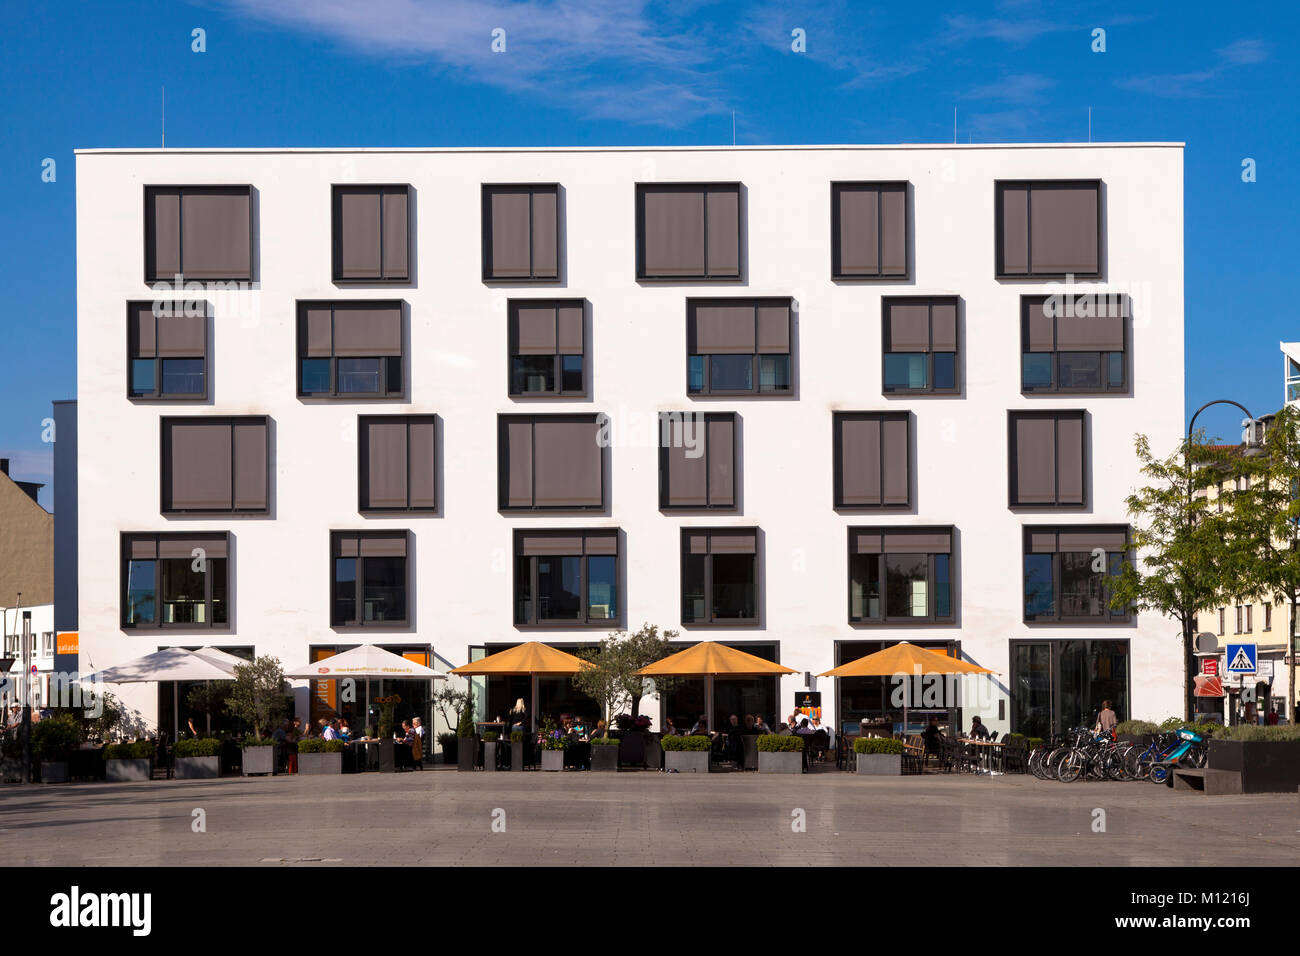 Germany, Cologne, the Palladio Cafe at the Maternus square in the district Rodenkirchen.  Deutschland, Koeln, das Stock Photo